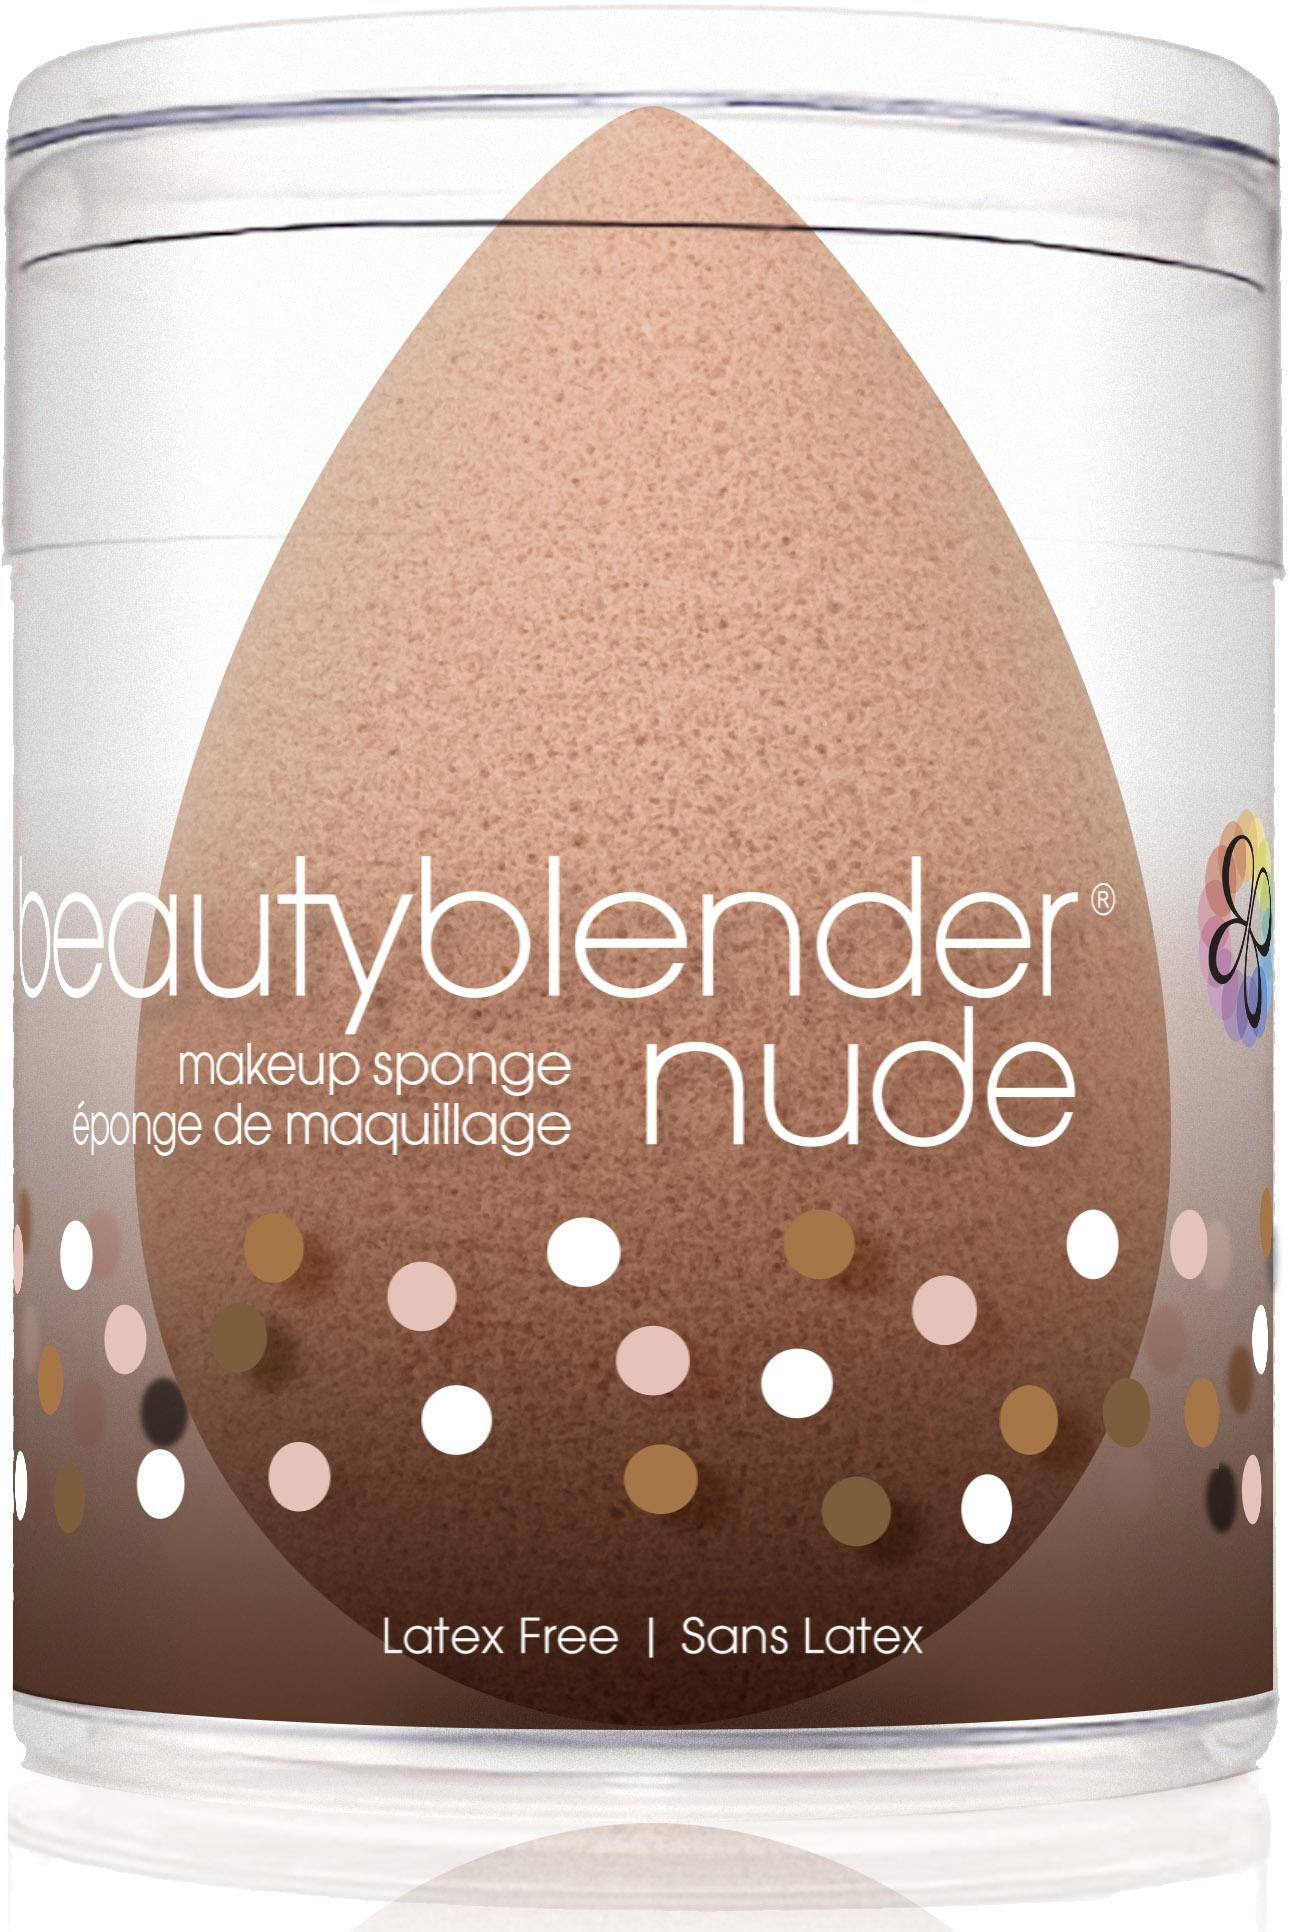 The Original Beautyblender, »Beautyblender Nude«, Make-up Schwamm